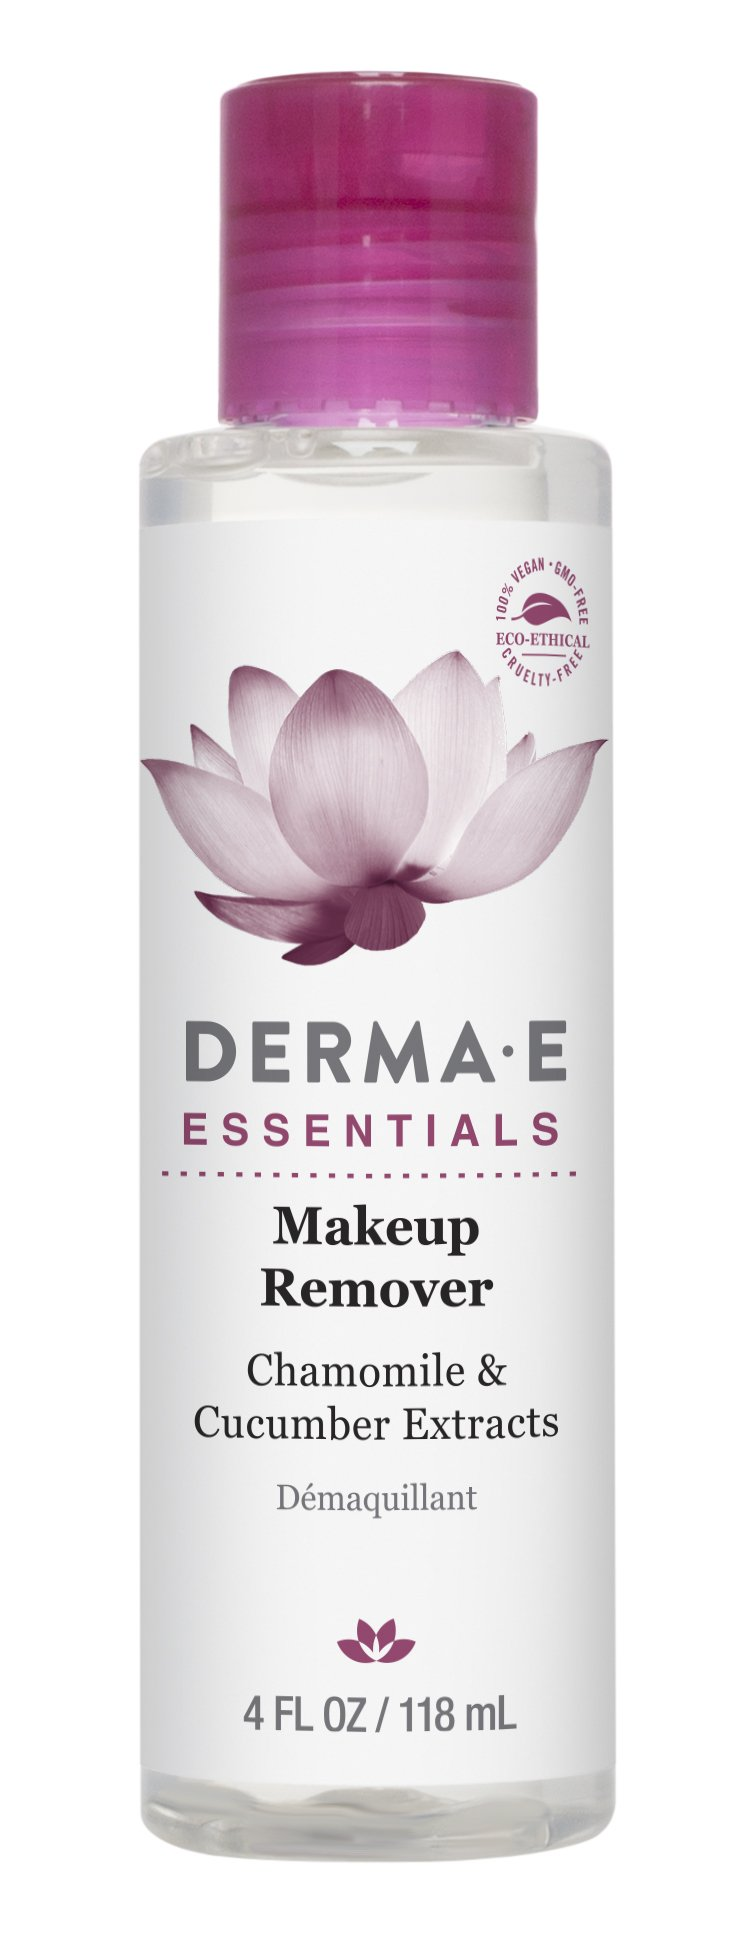 DERMA E Makeup Remover with Chamomile and Cucumber Extracts 4 fl oz by DERMA-E (Image #2)